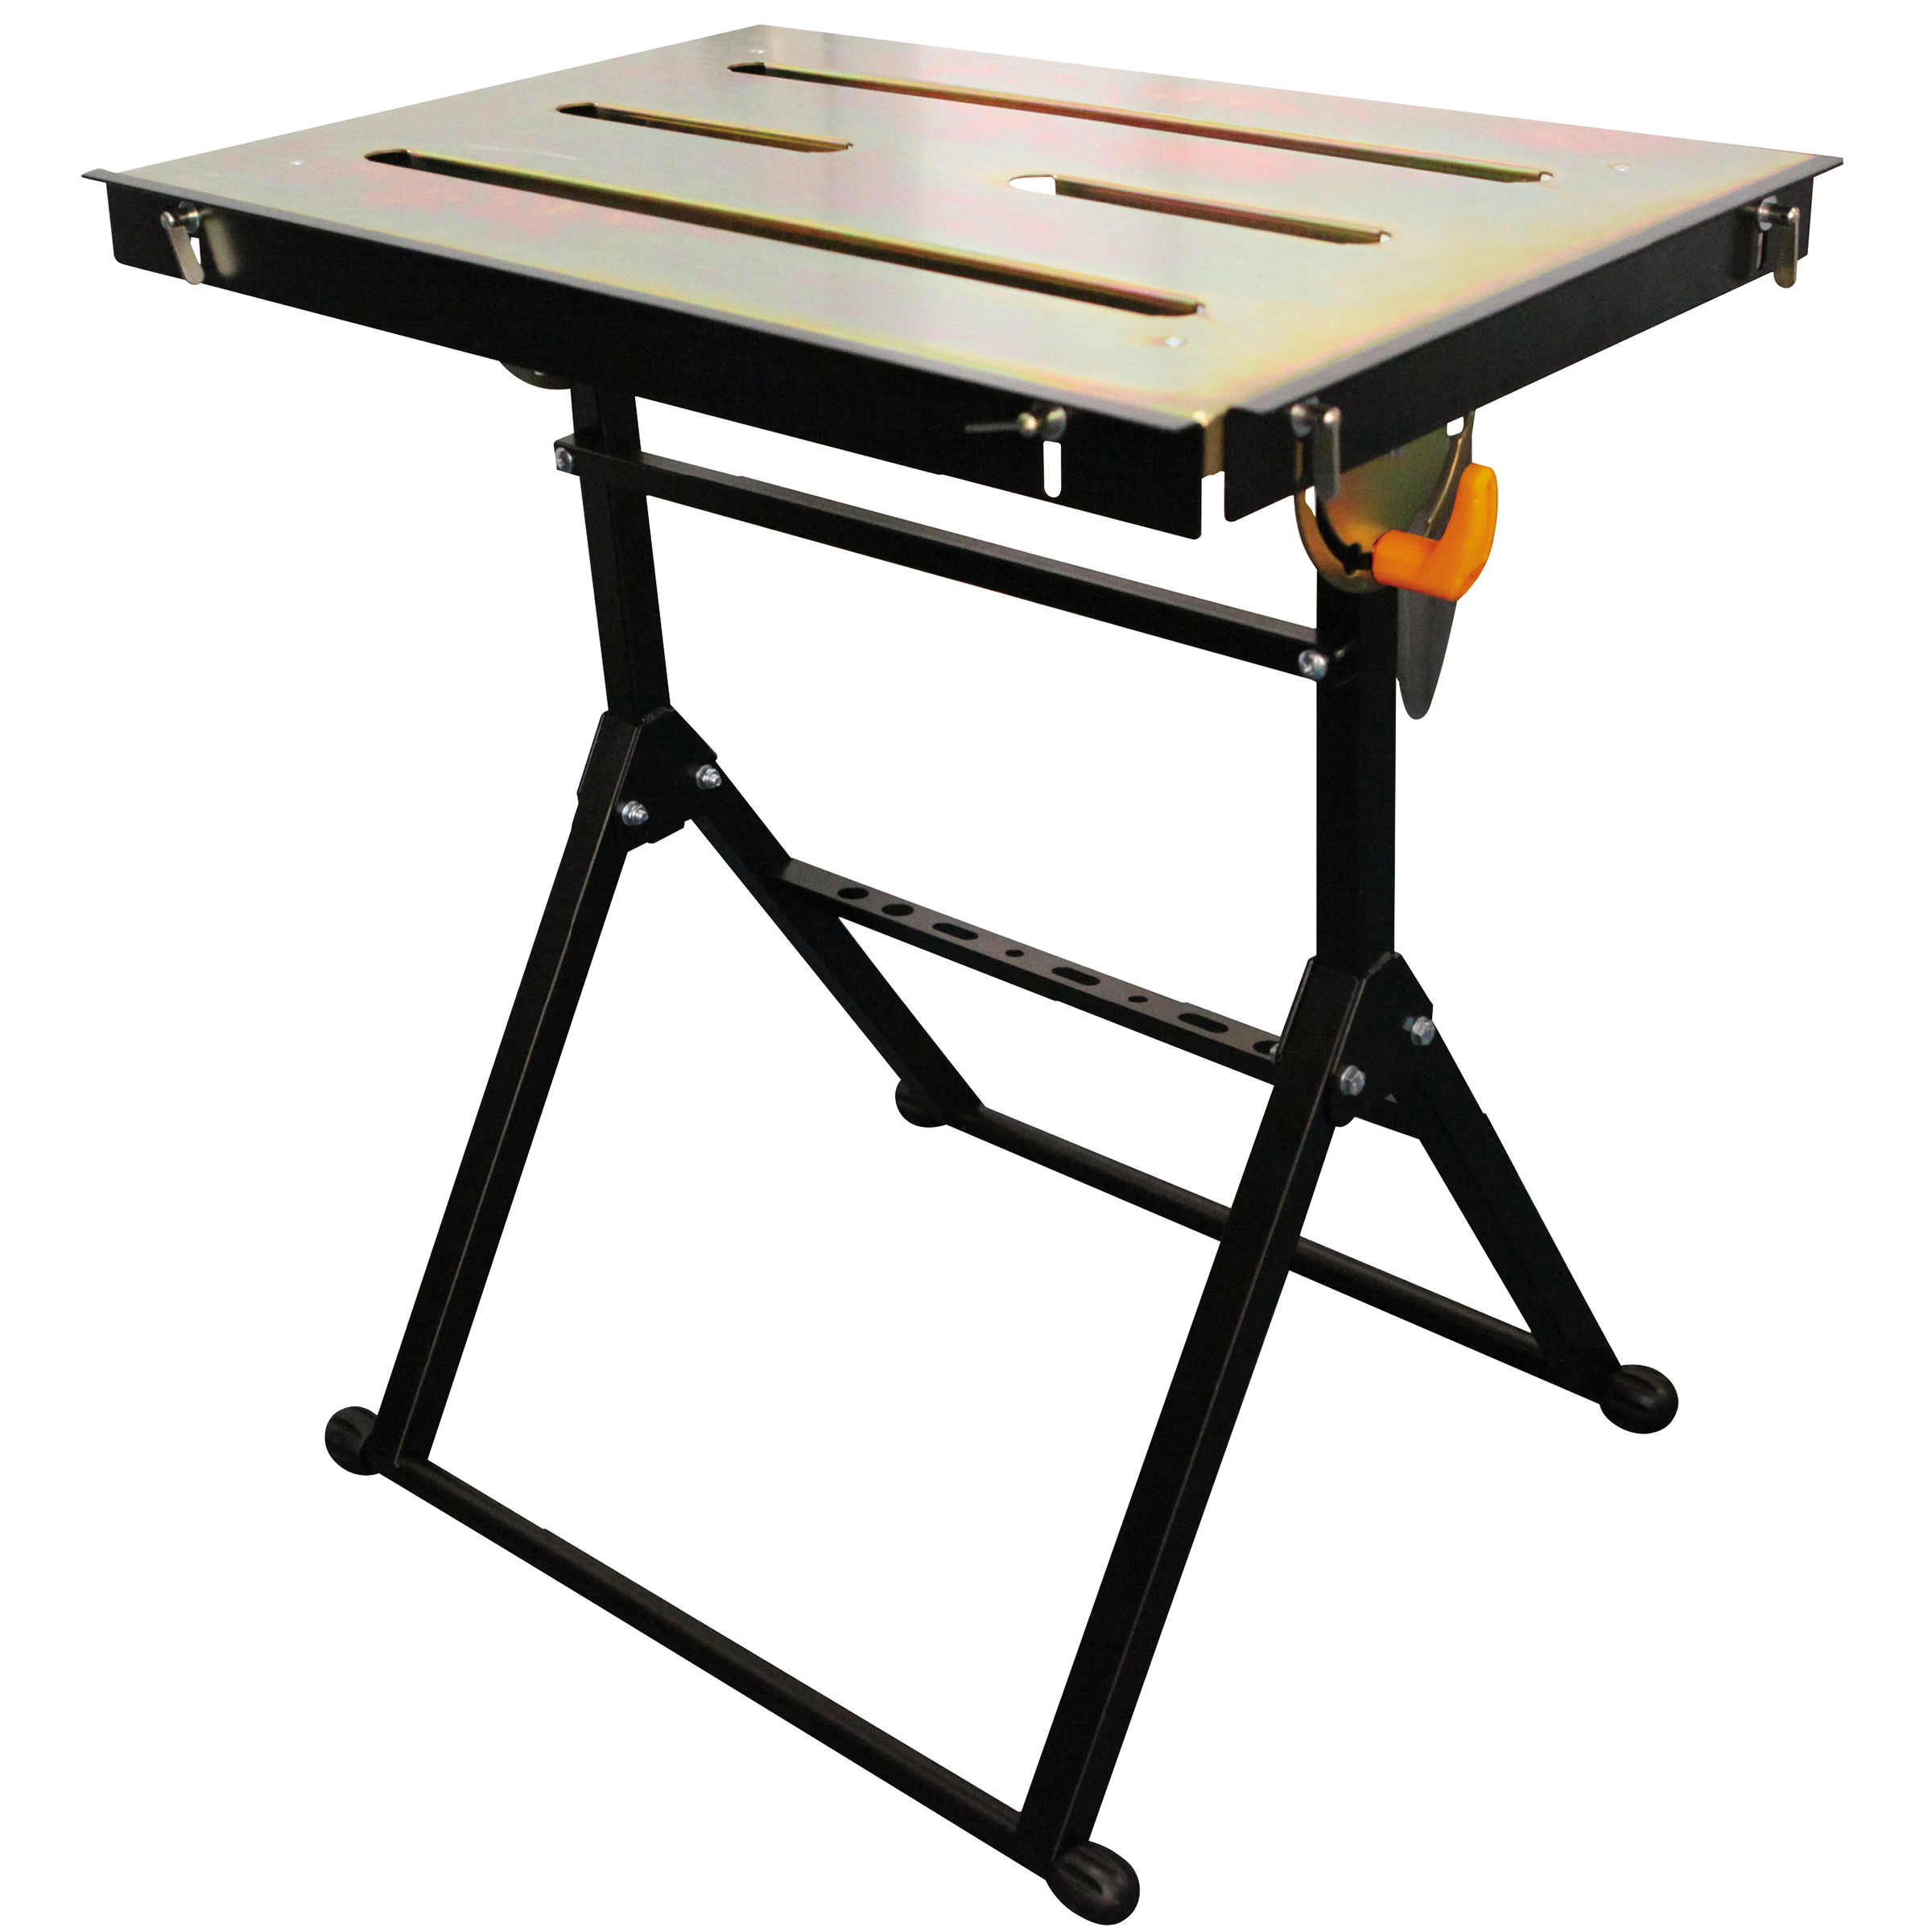 HIT Adjustable Flameproof Steel Welding Table